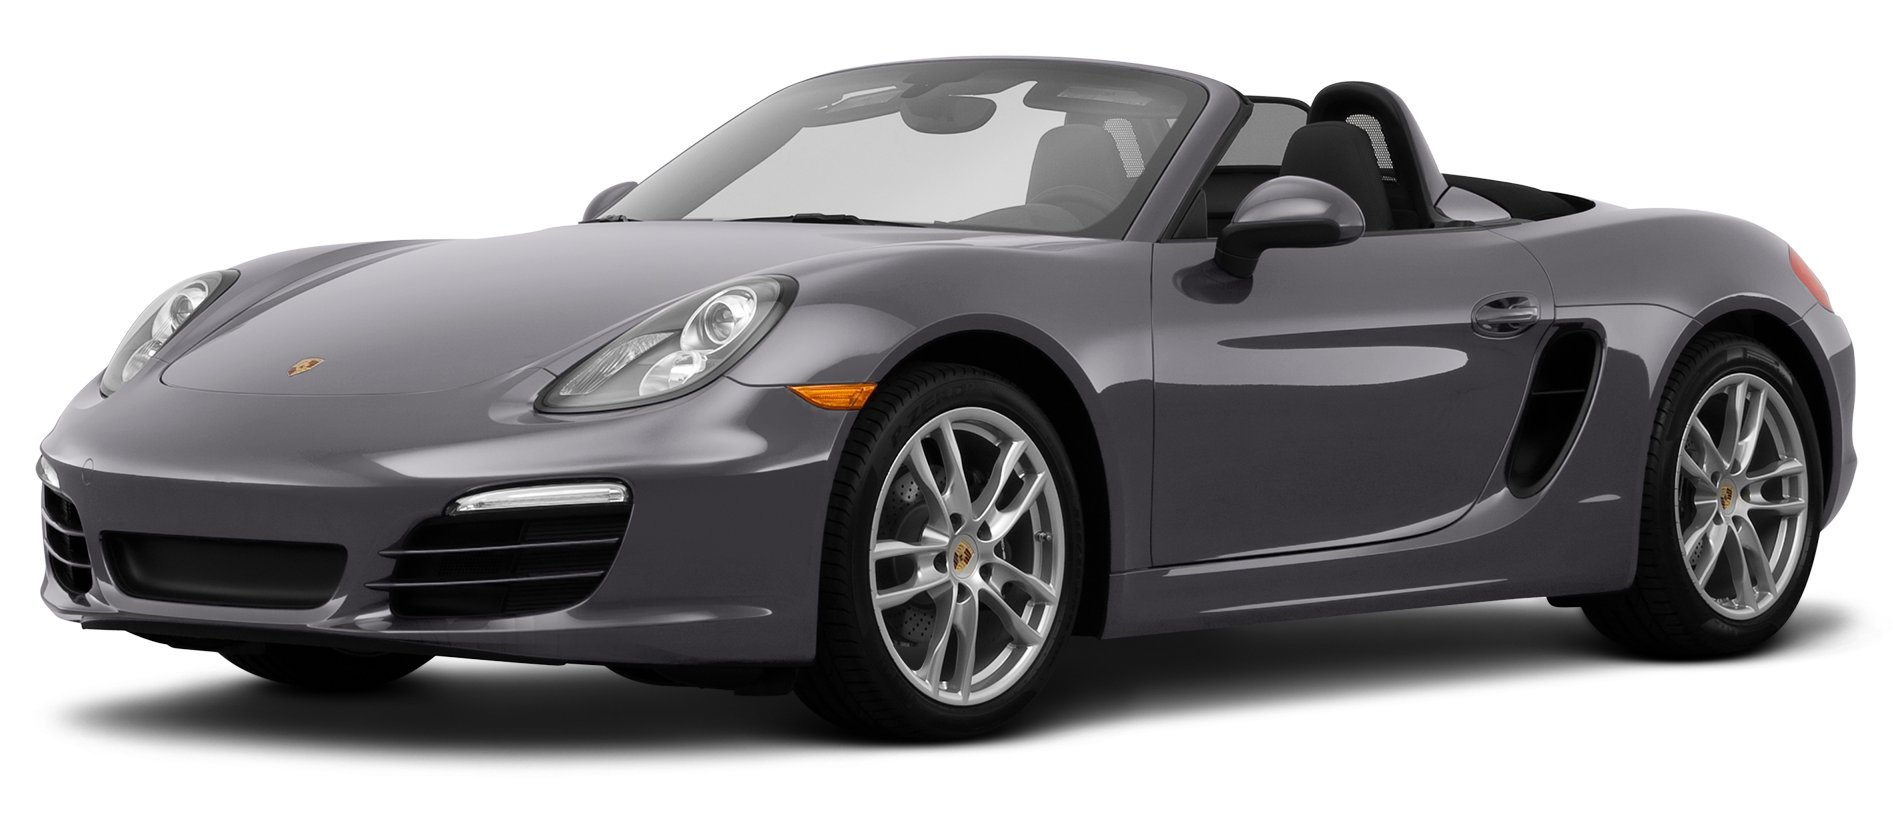 2013 Chevrolet Corvette Reviews Images And Specs Vehicles C6 Painted Fuse Box Cover Porsche Boxster 2 Door Roadster